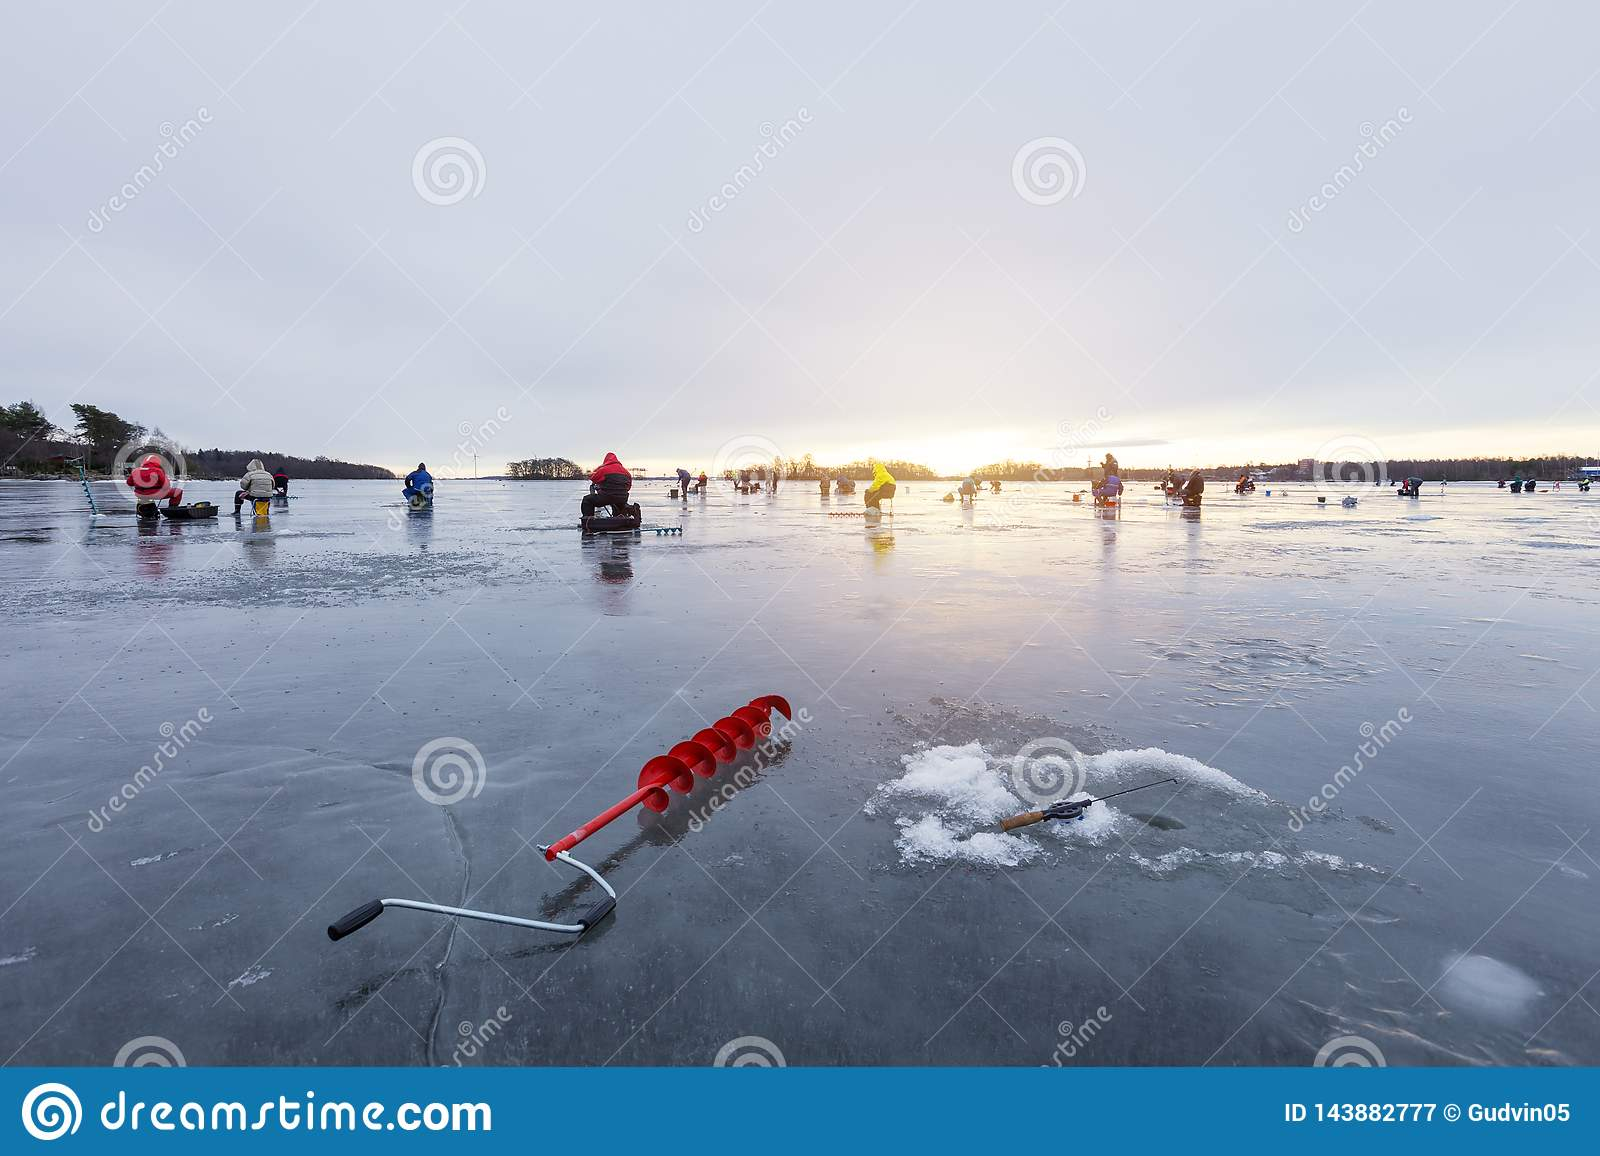 Group of fishermens on winter fishing on ice at sunset